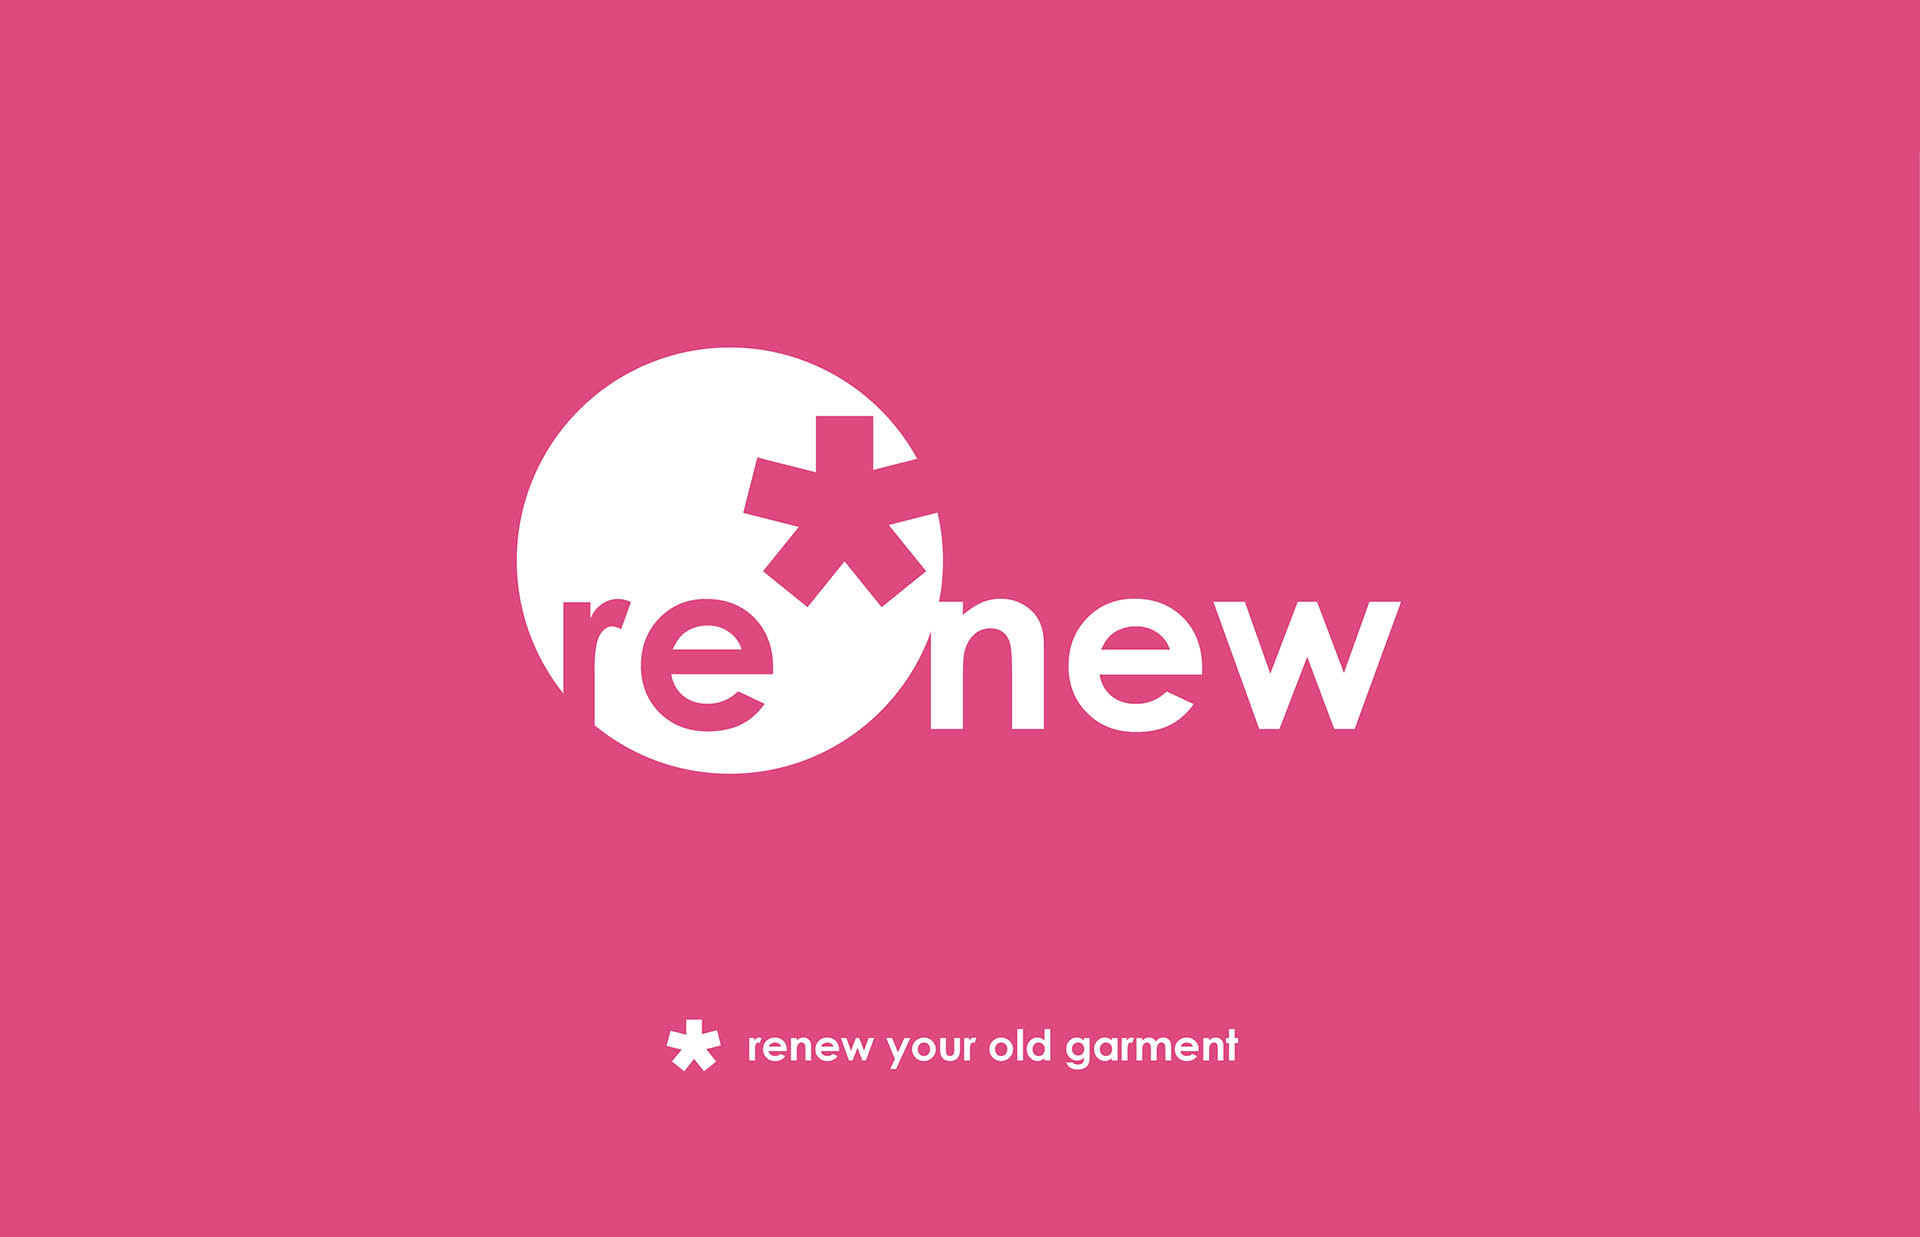 Within Restore you can exchange and renew your clothes